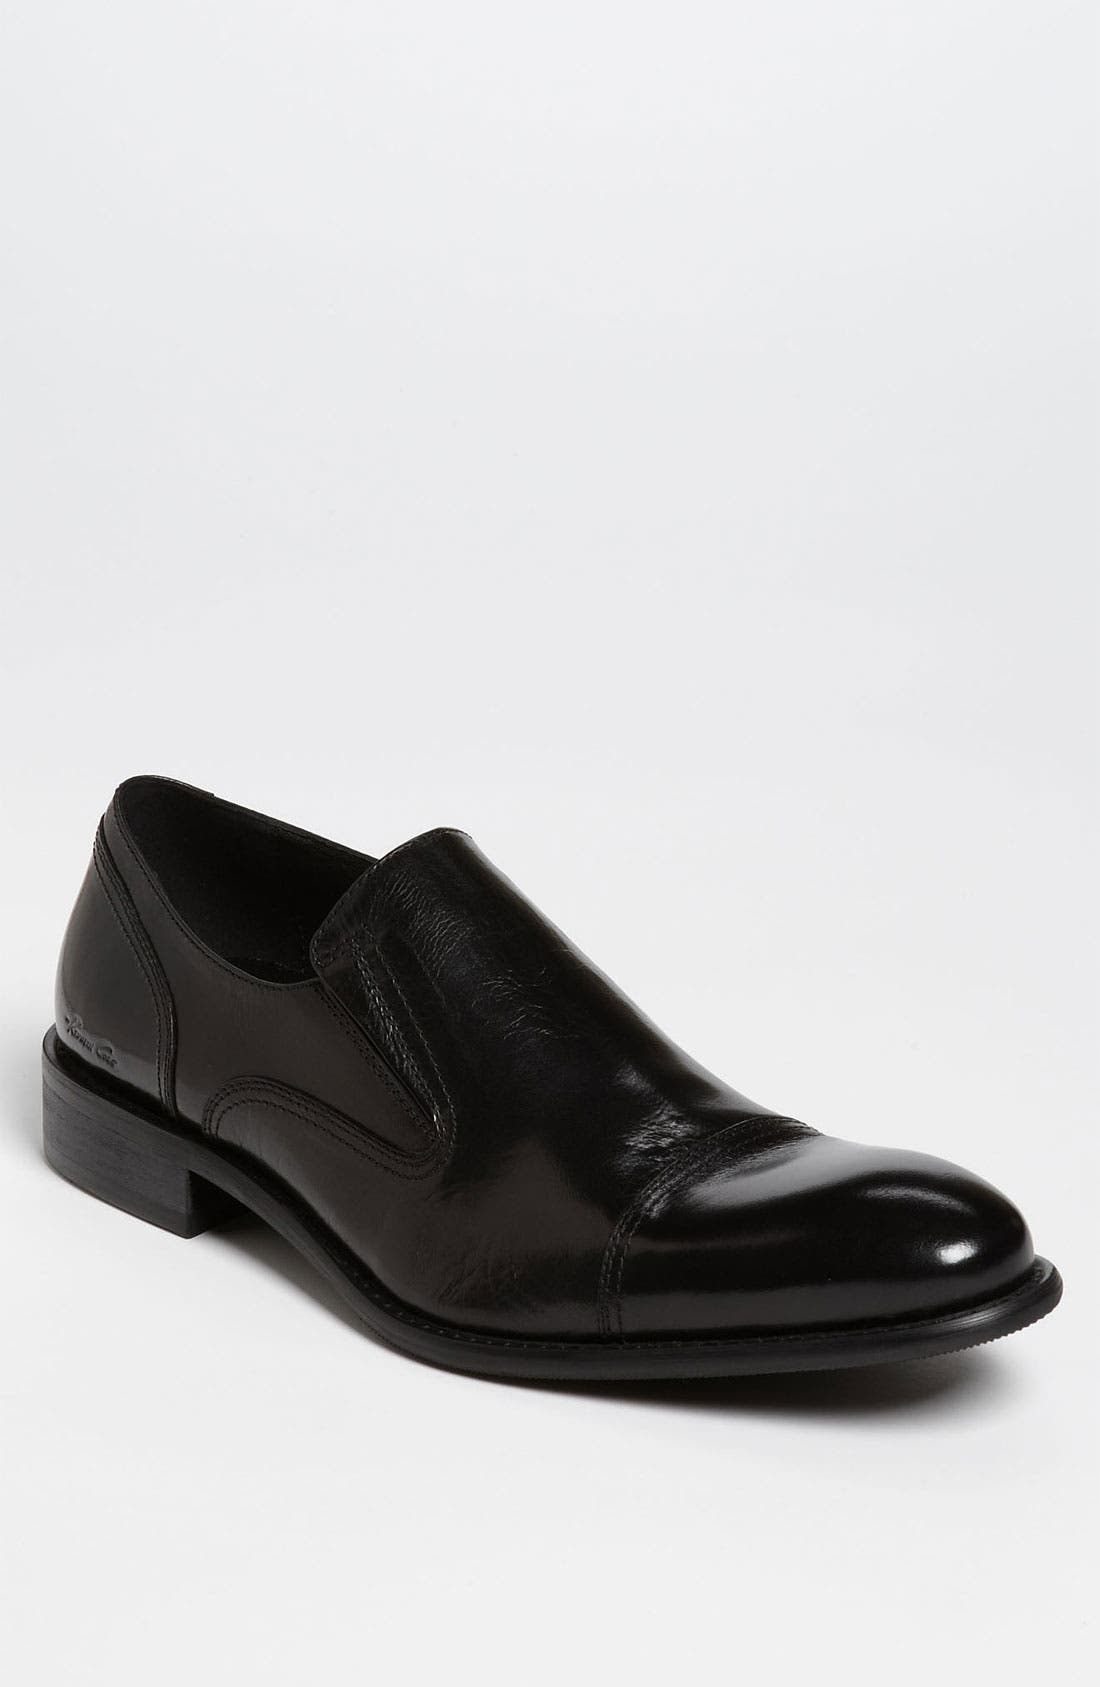 Alternate Image 1 Selected - Kenneth Cole New York 'Bump N Round' Venetian Loafer (Online Exclusive)